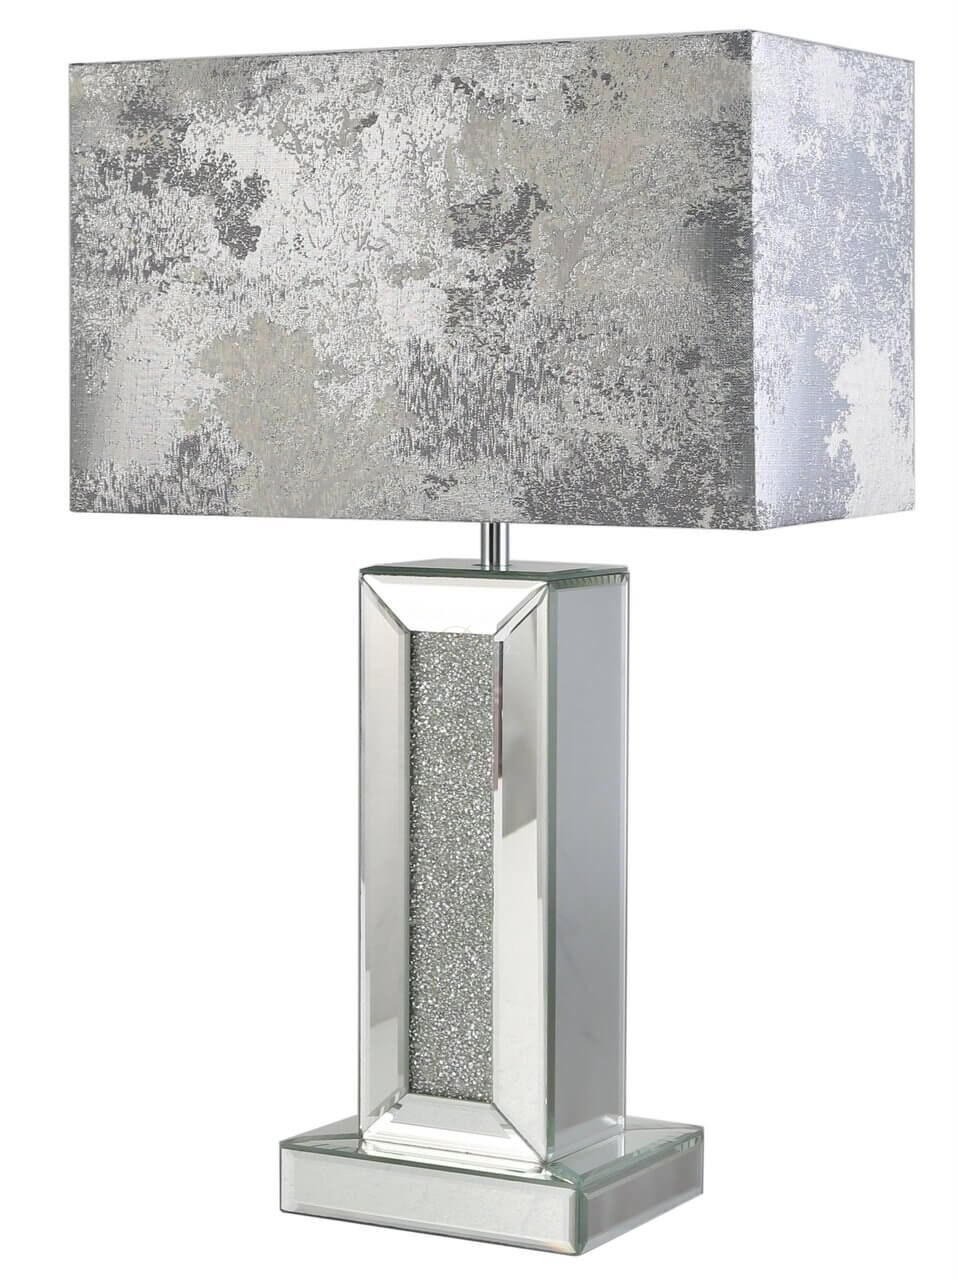 mirror-table-lamp-marble-shade-2